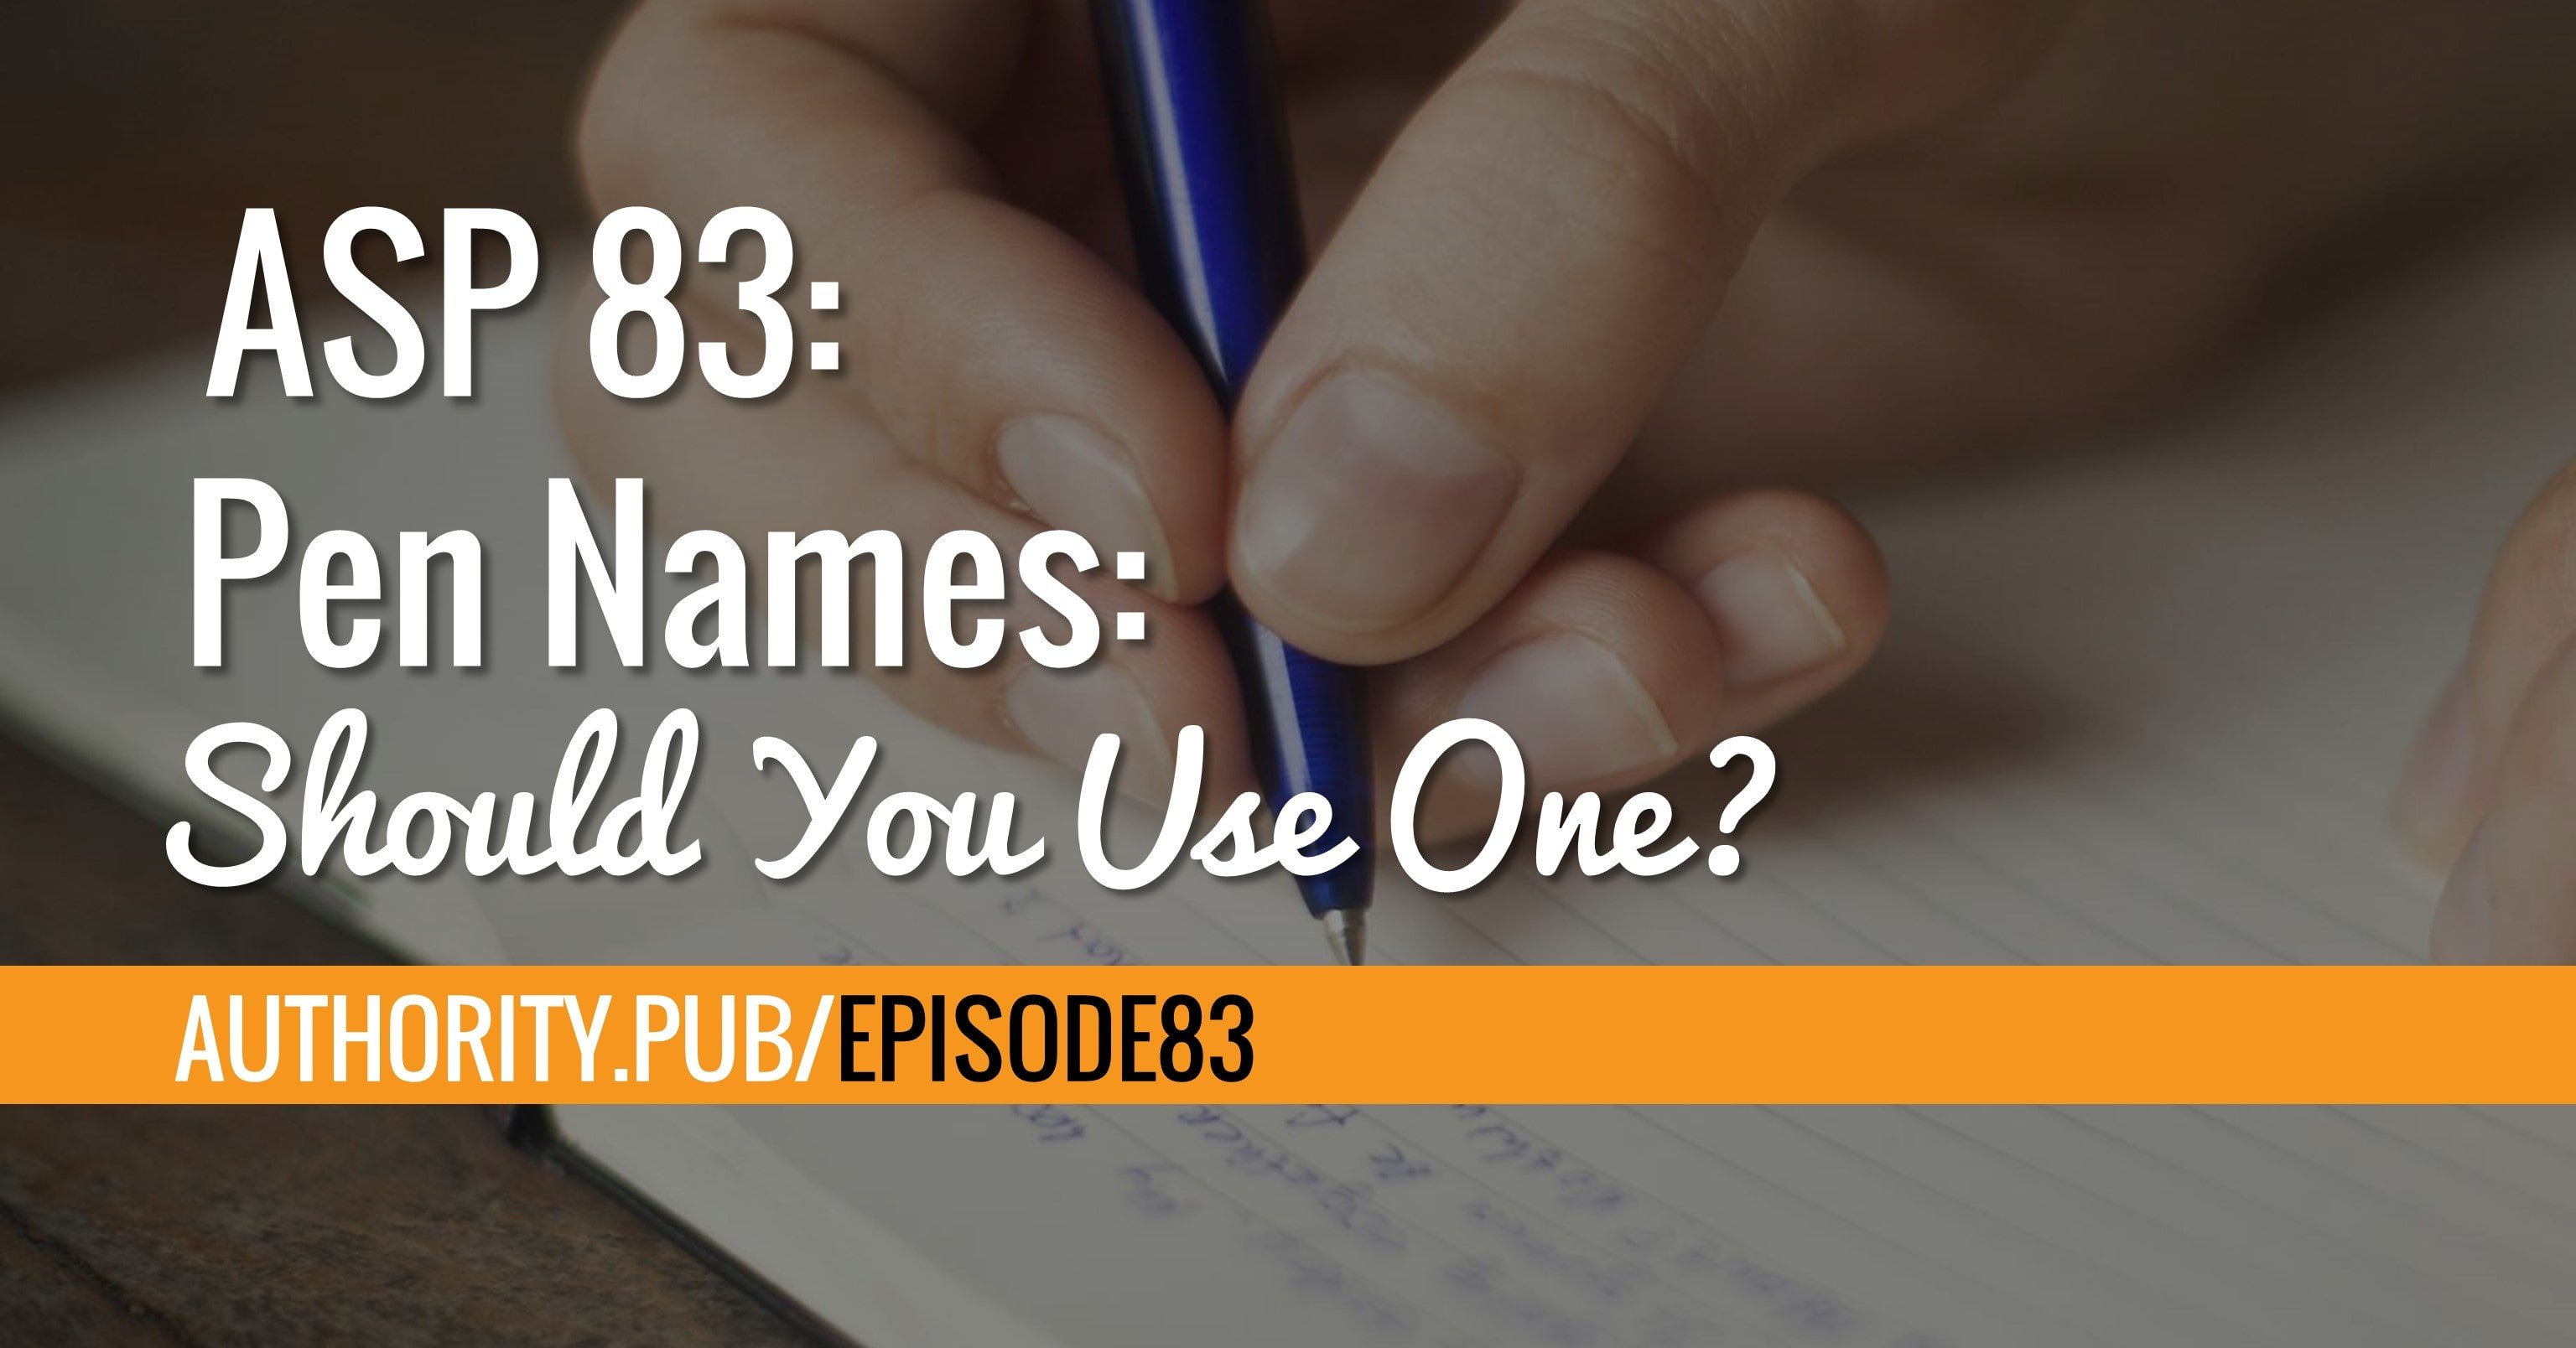 ASP 83: Pen Names: Should You Use One?